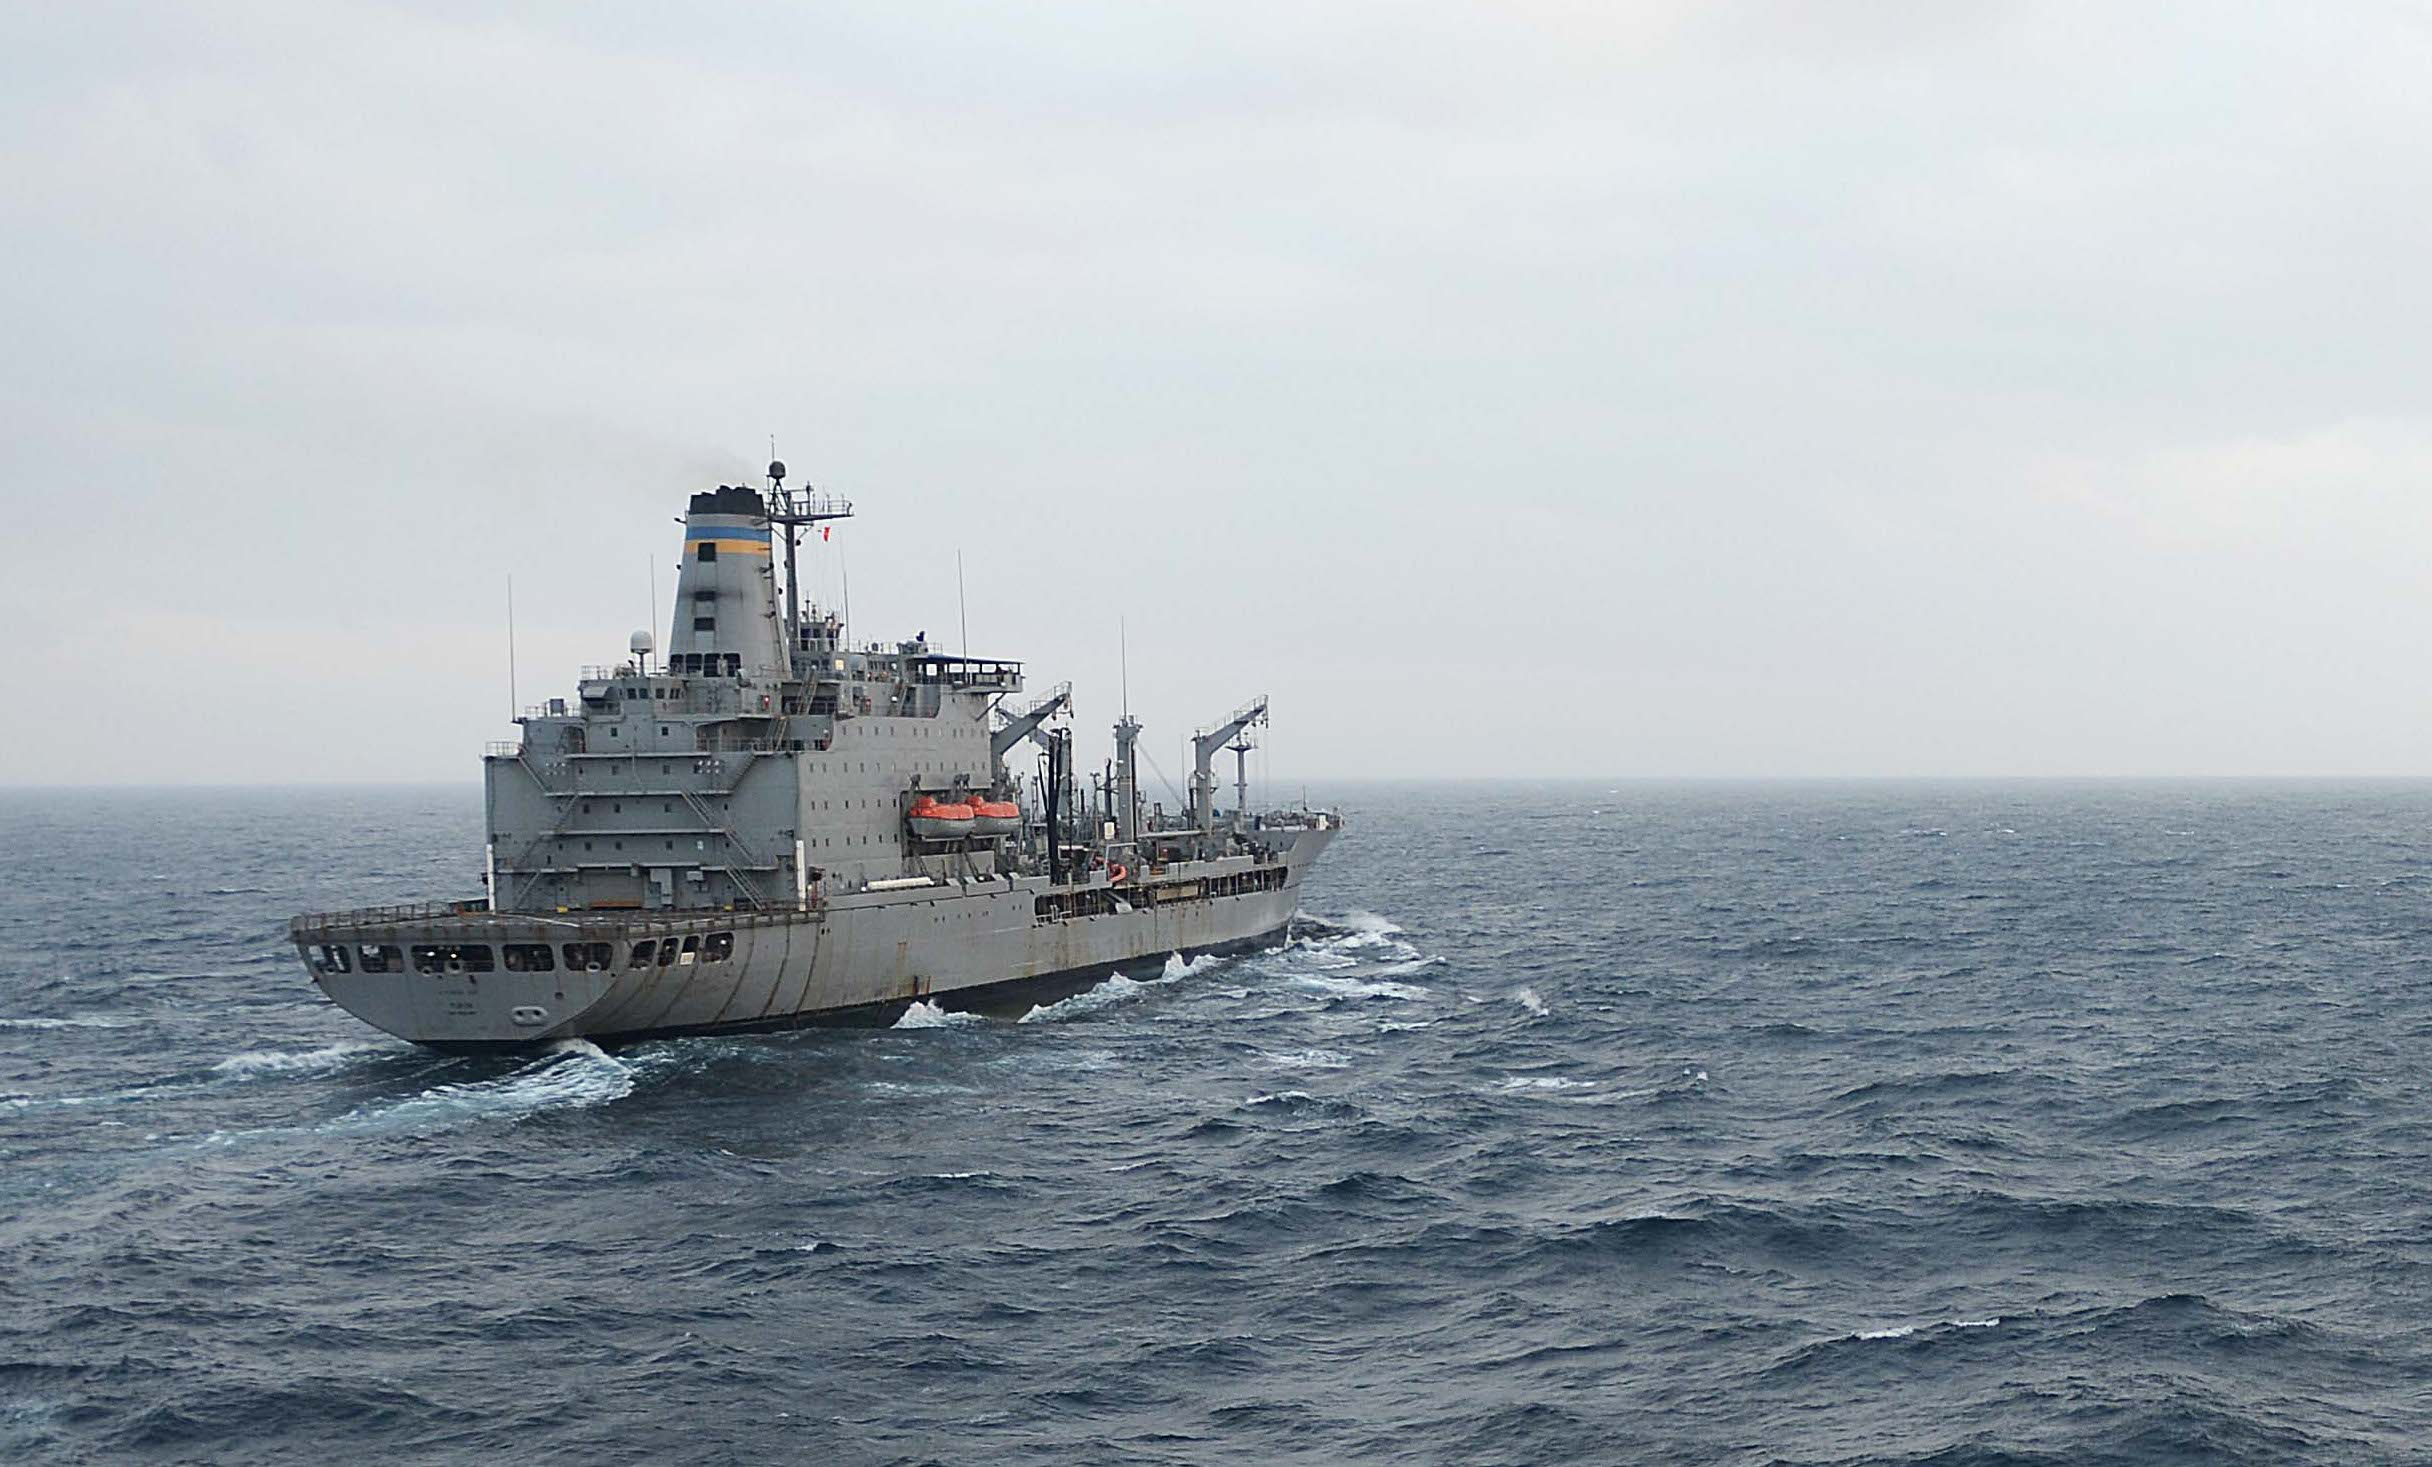 USNS Yukon (T-AO-202) on Nov. 7, 2013. US Navy Photo